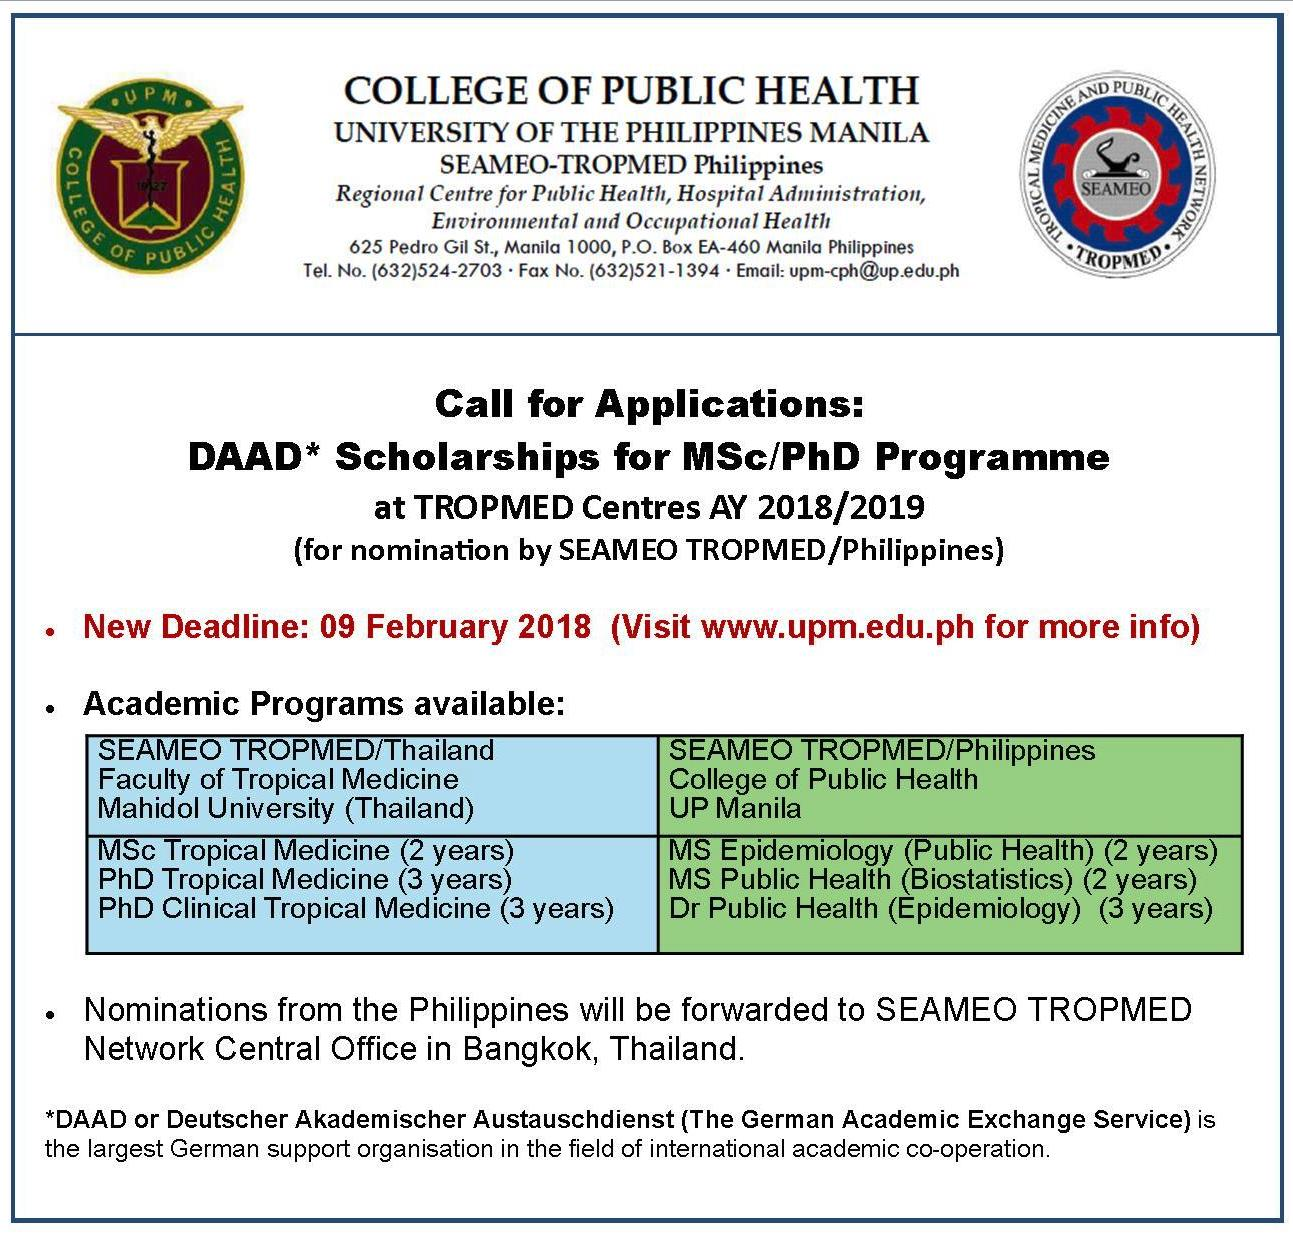 University of the Philippines Manila on application template, application approved, application meaning in science, application to rent california, application to join motorcycle club, application insights, application error, application to be my boyfriend, application clip art, application for employment, application in spanish, application for rental, application for scholarship sample, application database diagram, application service provider, application cartoon, application to join a club, application to date my son, application submitted, application trial,